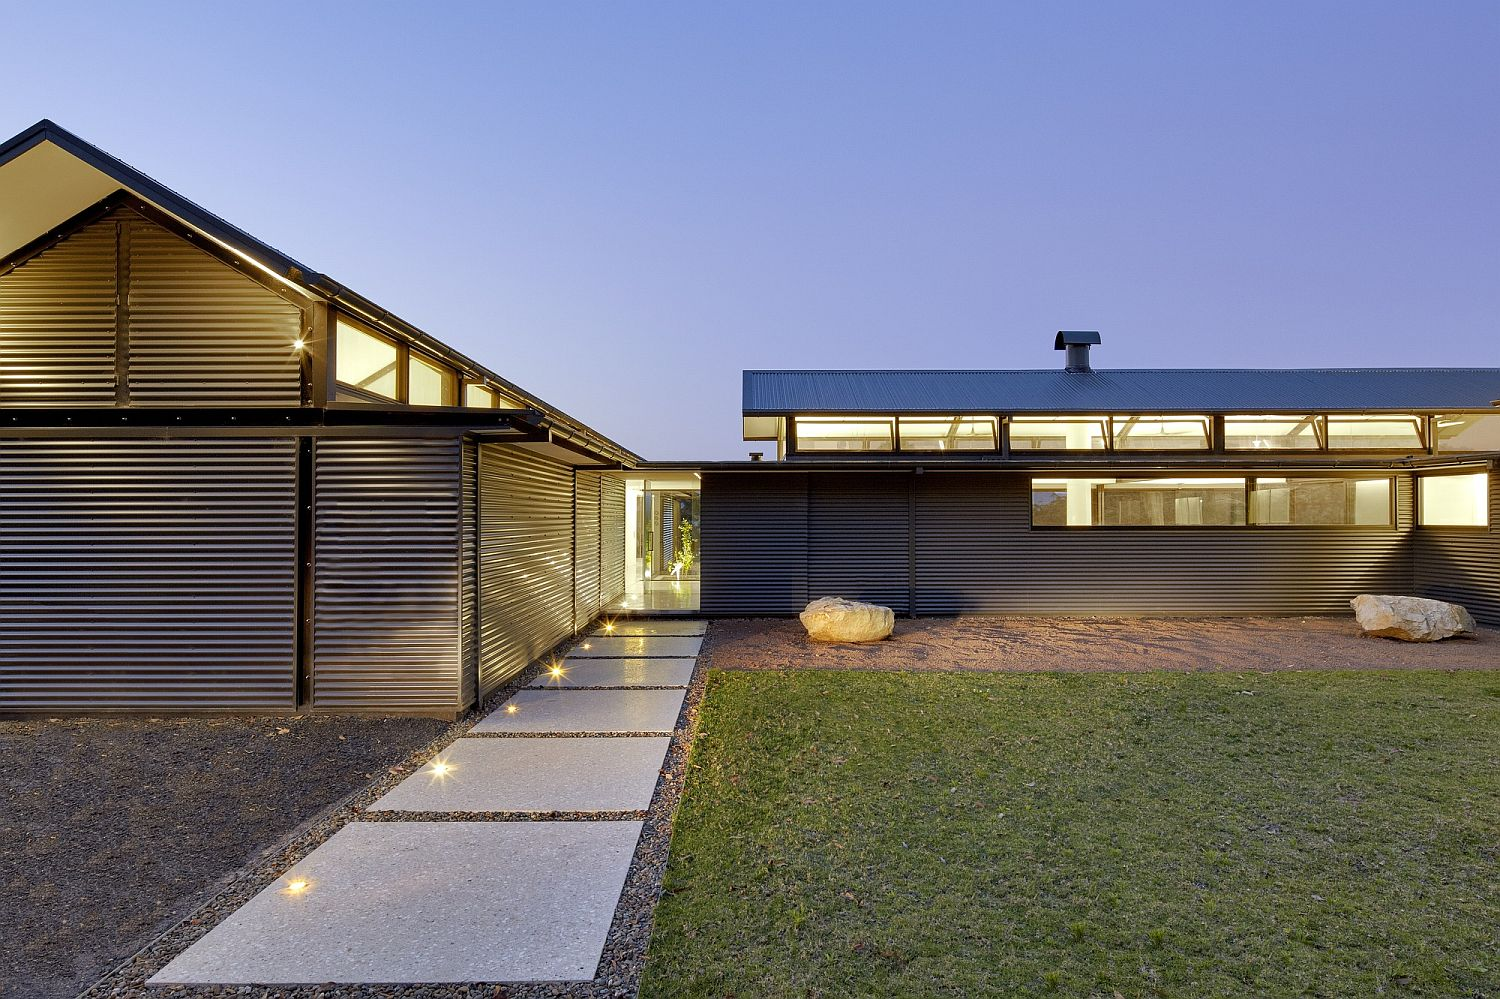 Beautifully lit entranceway to the eco-friendly Rural Home in Kangaroo Valley